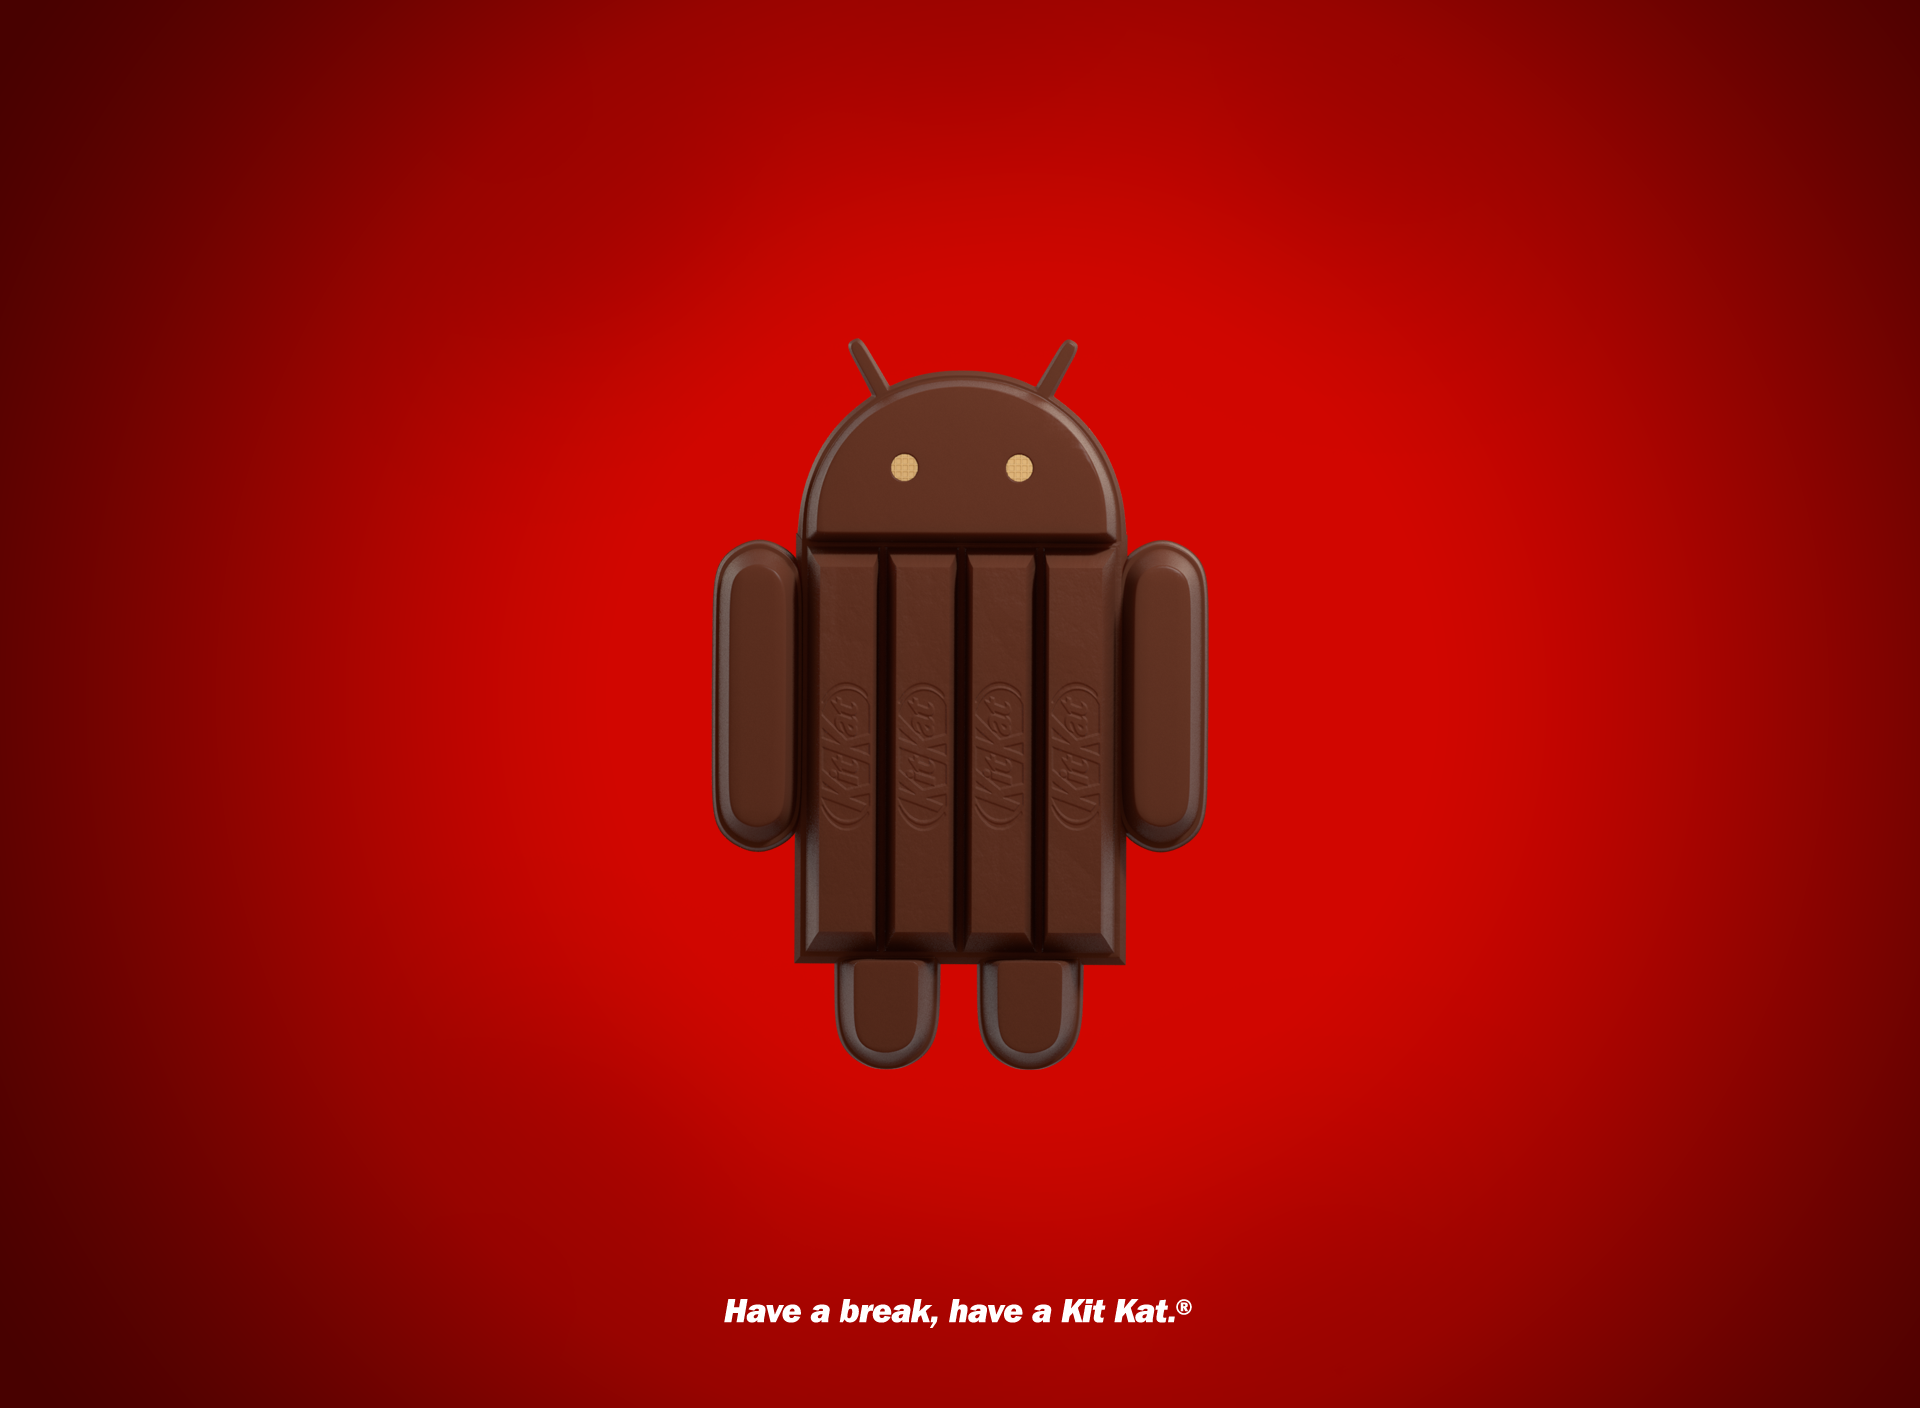 Android Kit Kat Wallpaper Android Kitkat Nestle 4 4 Android Weird And Wonderful Android